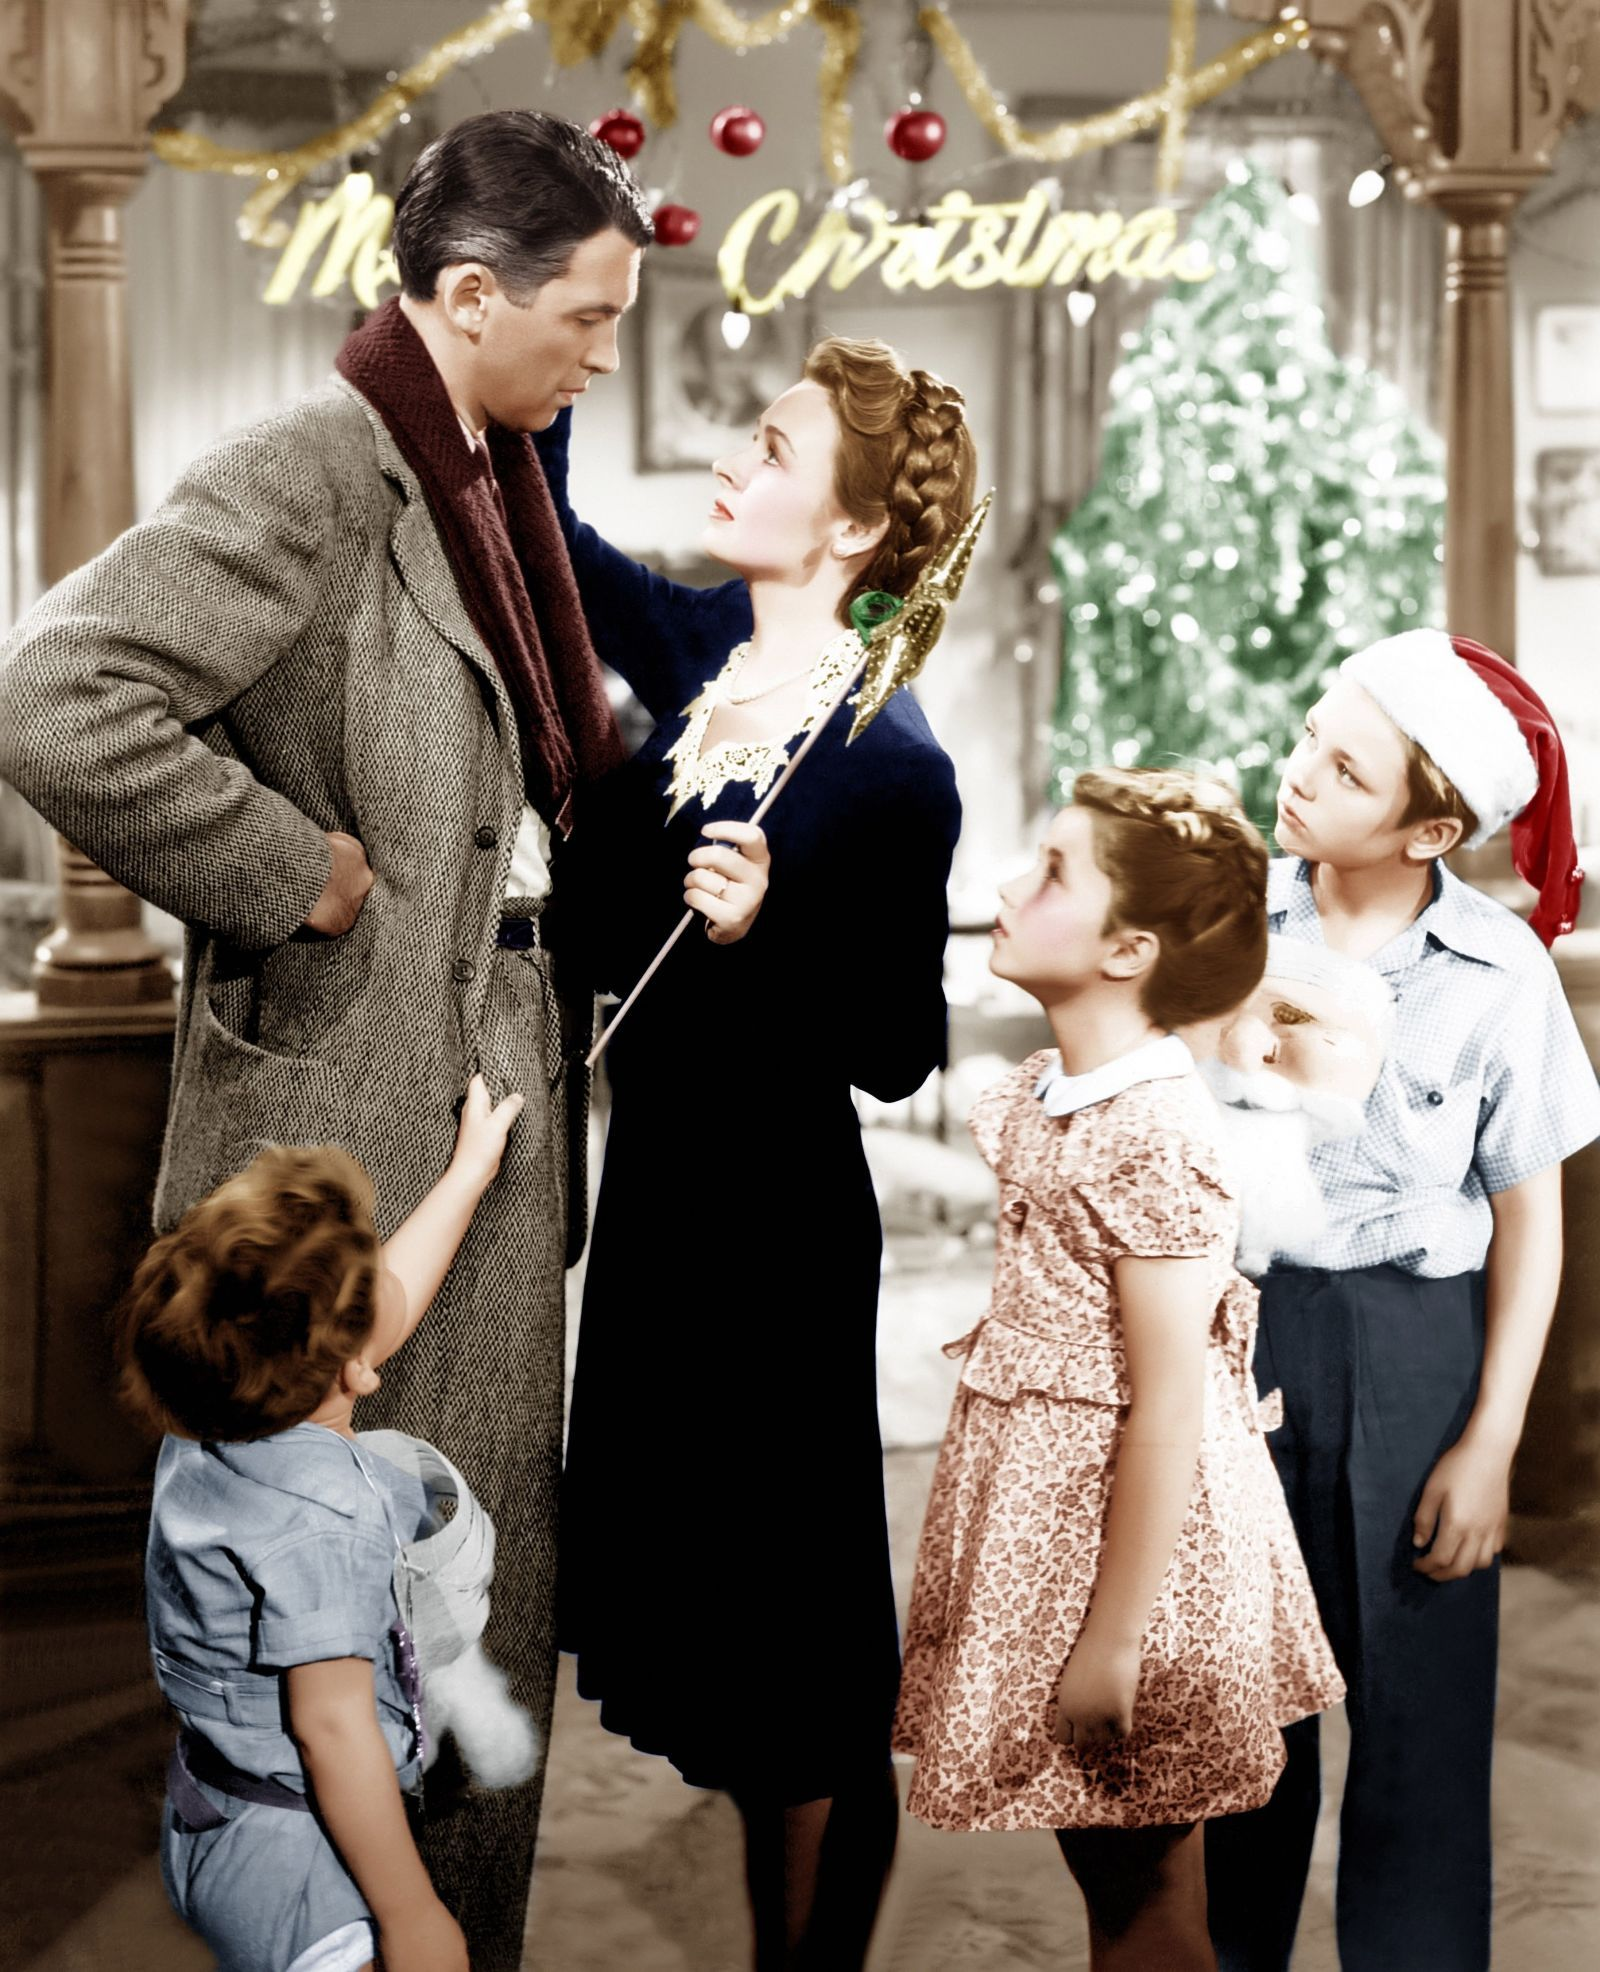 It S A Wonderful Life Quote In Book At End: Best 25+ Its A Wonderful Life Ideas On Pinterest